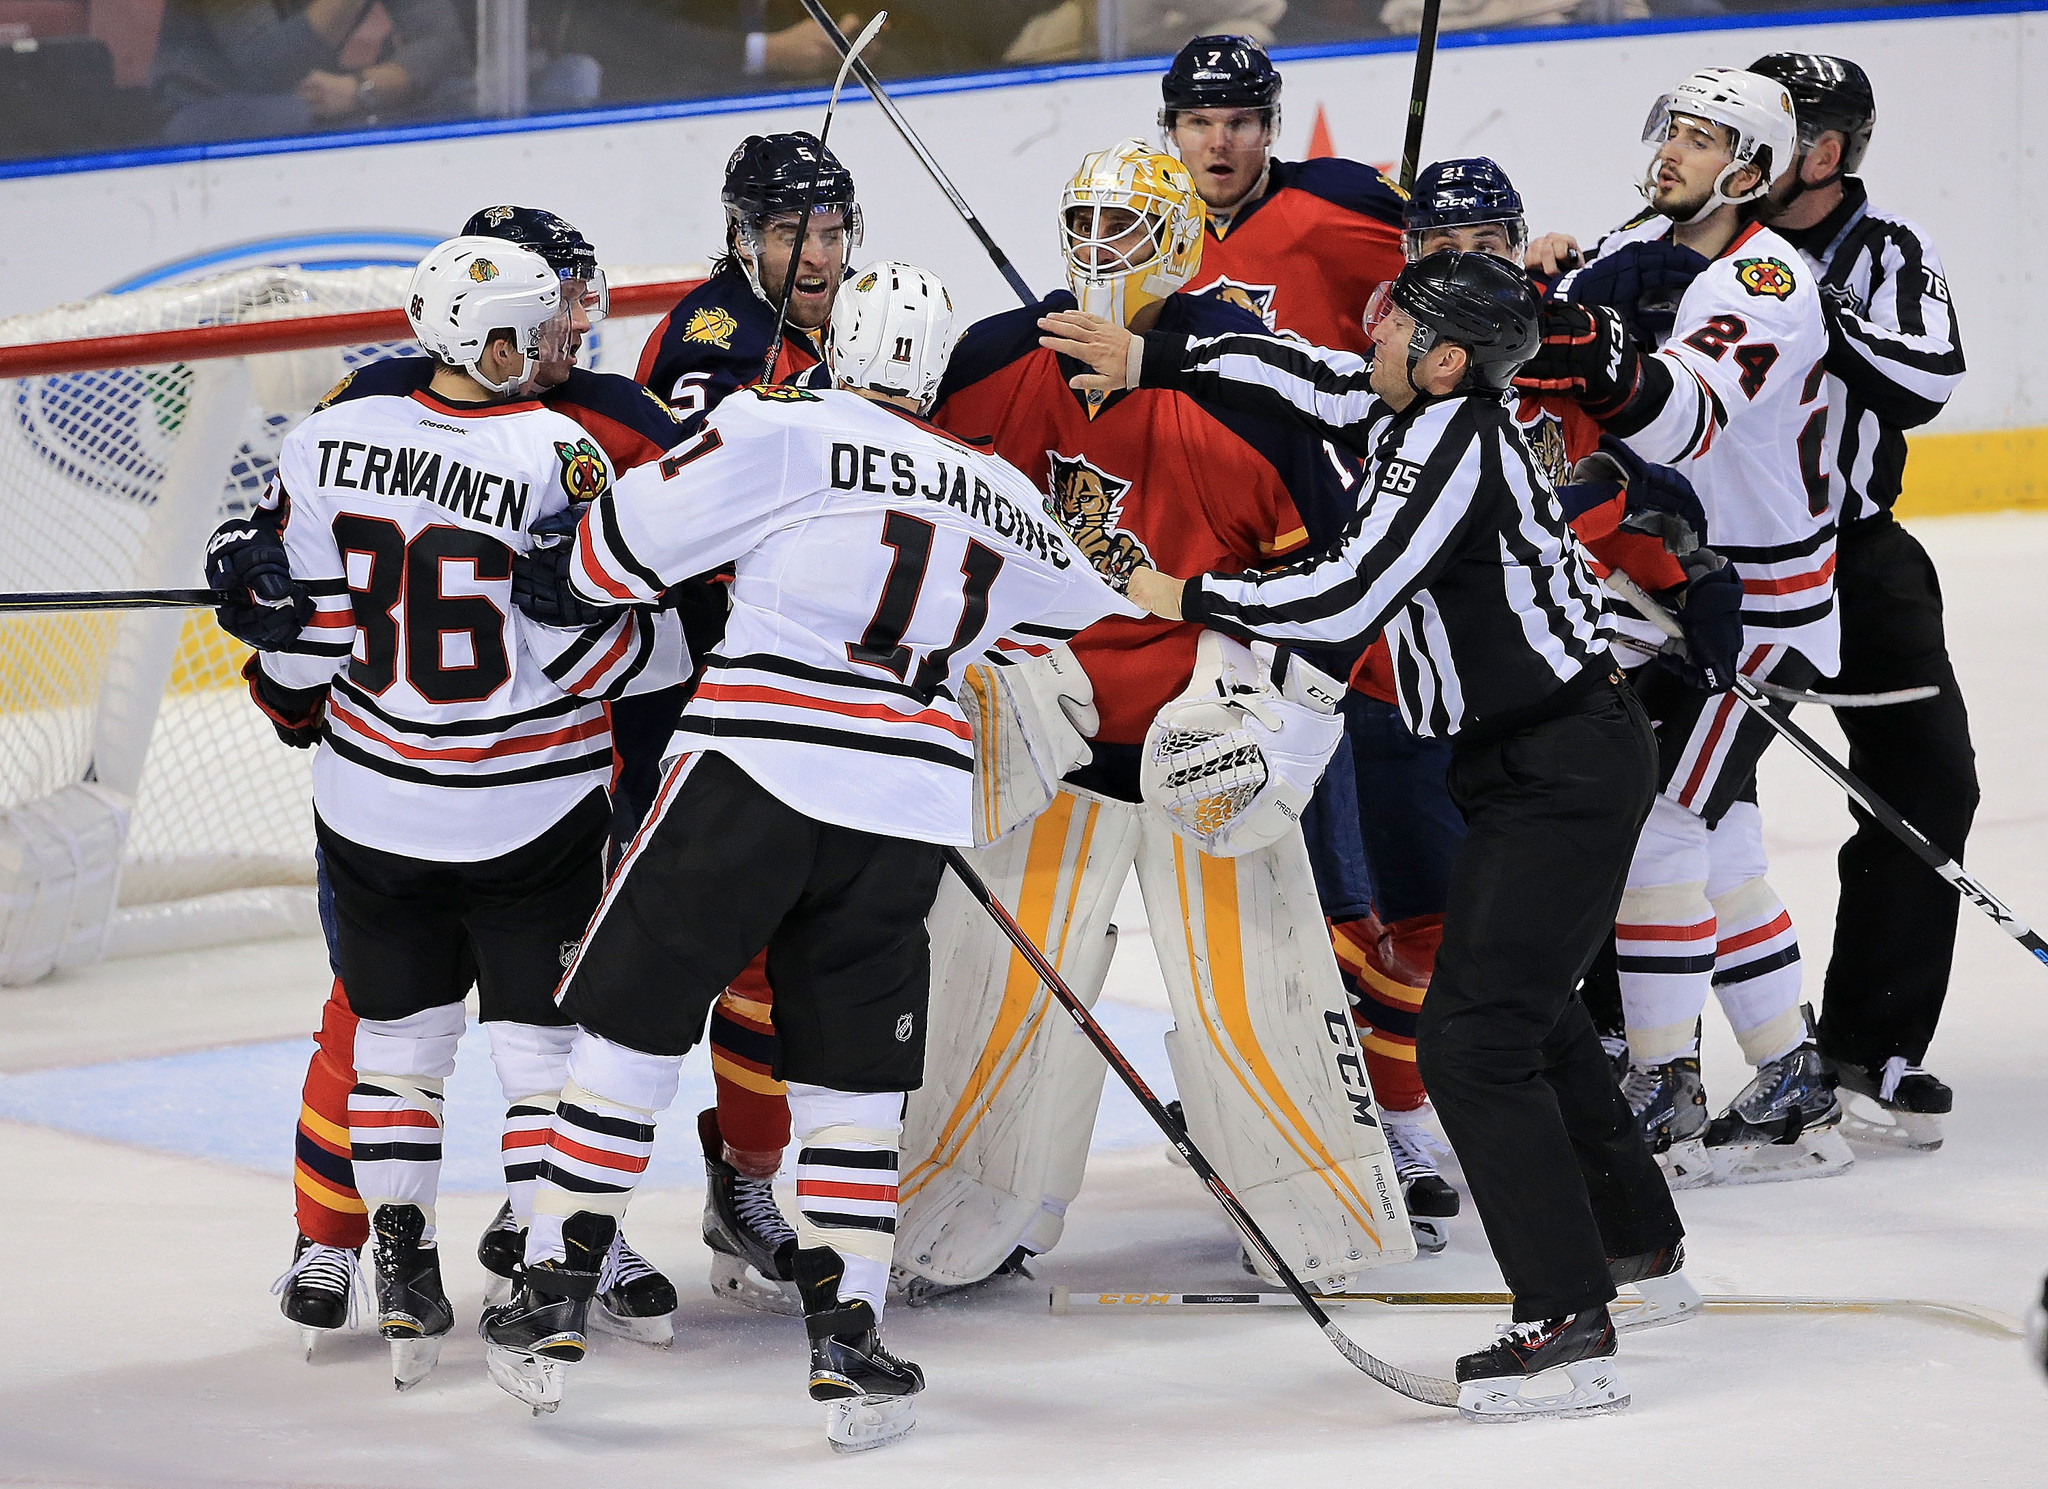 Ct-blackhawks-scrums-spt-0124-20160123